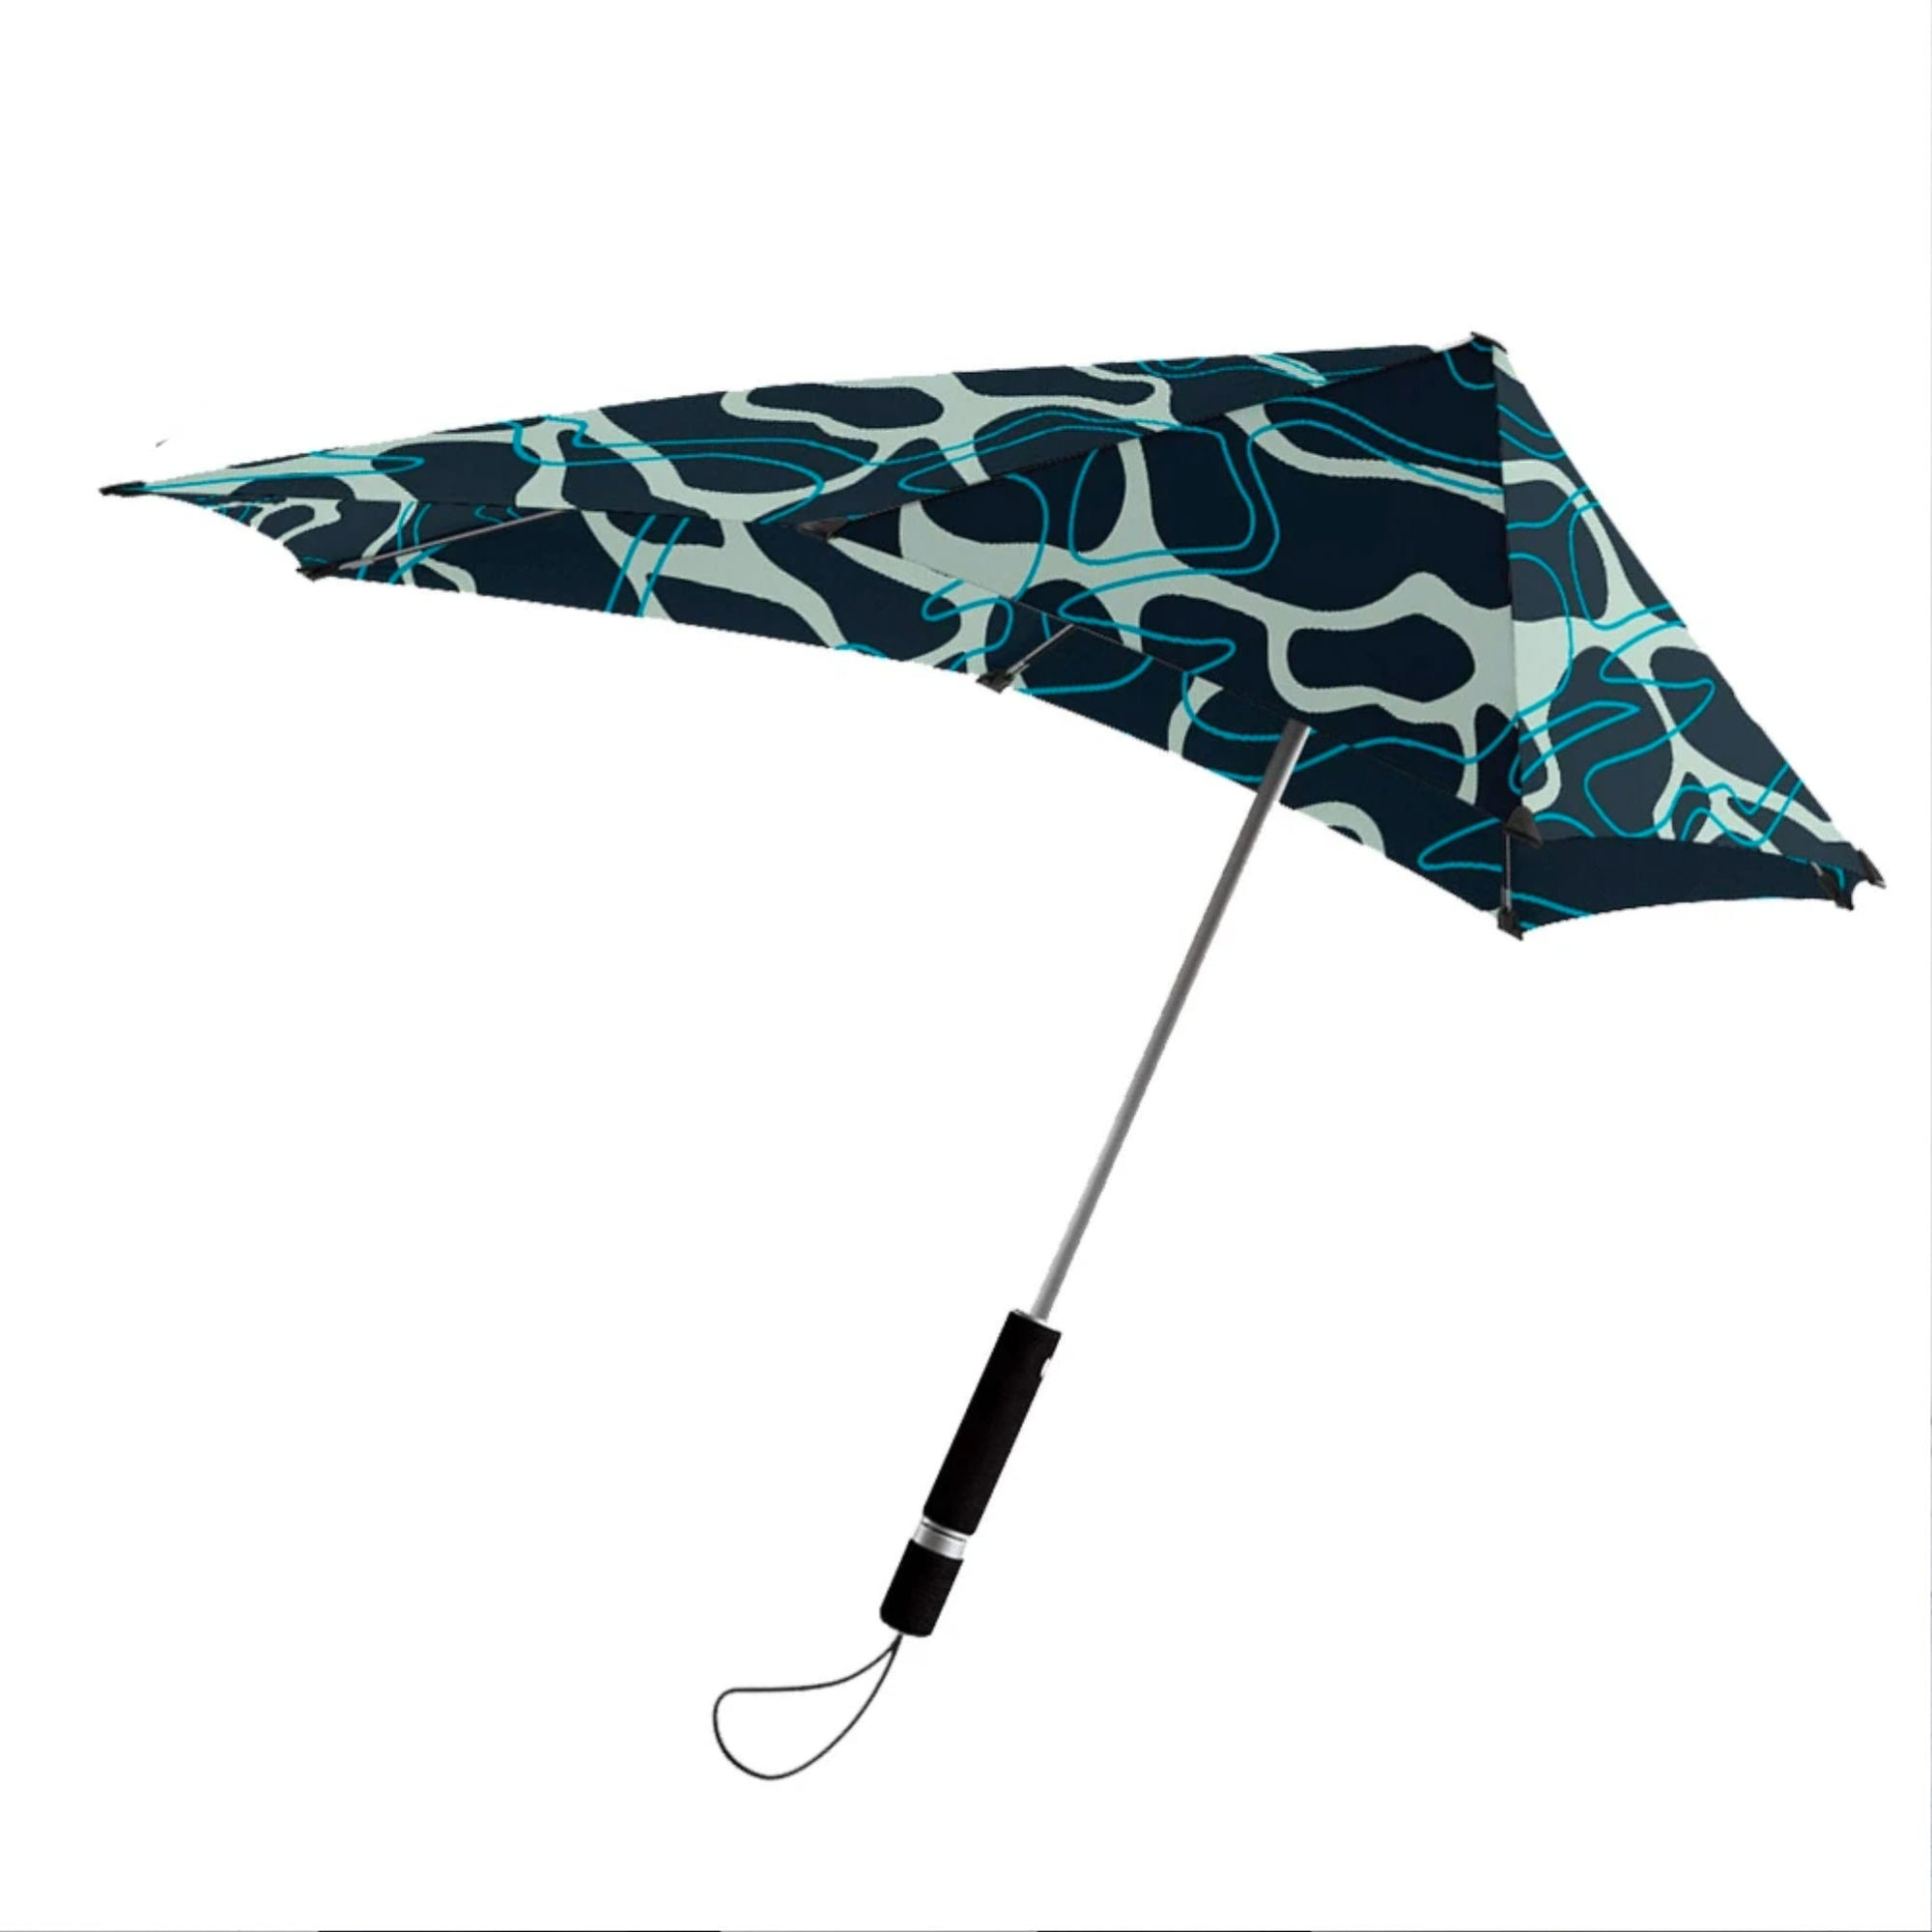 Senz° Original storm umbrella, stormy water